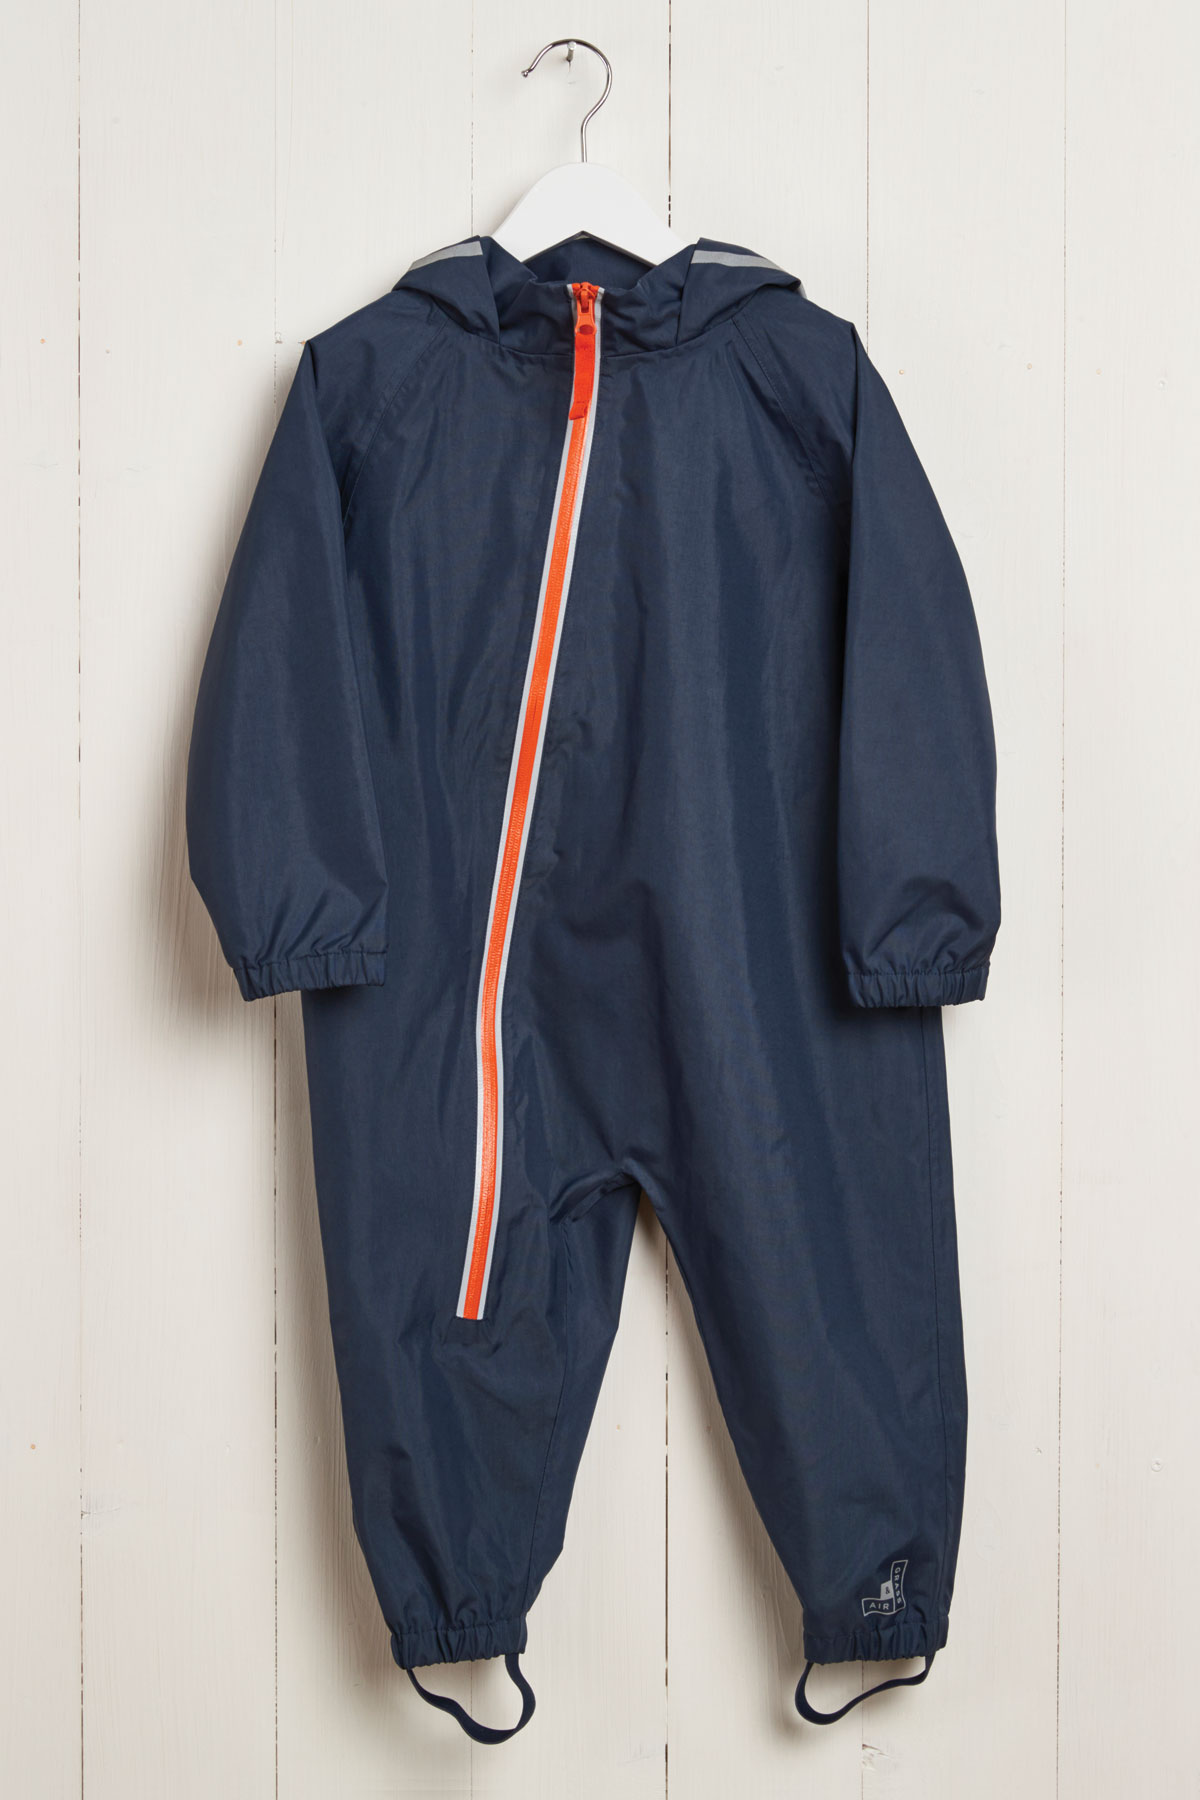 front product view of kids navy puddle suit